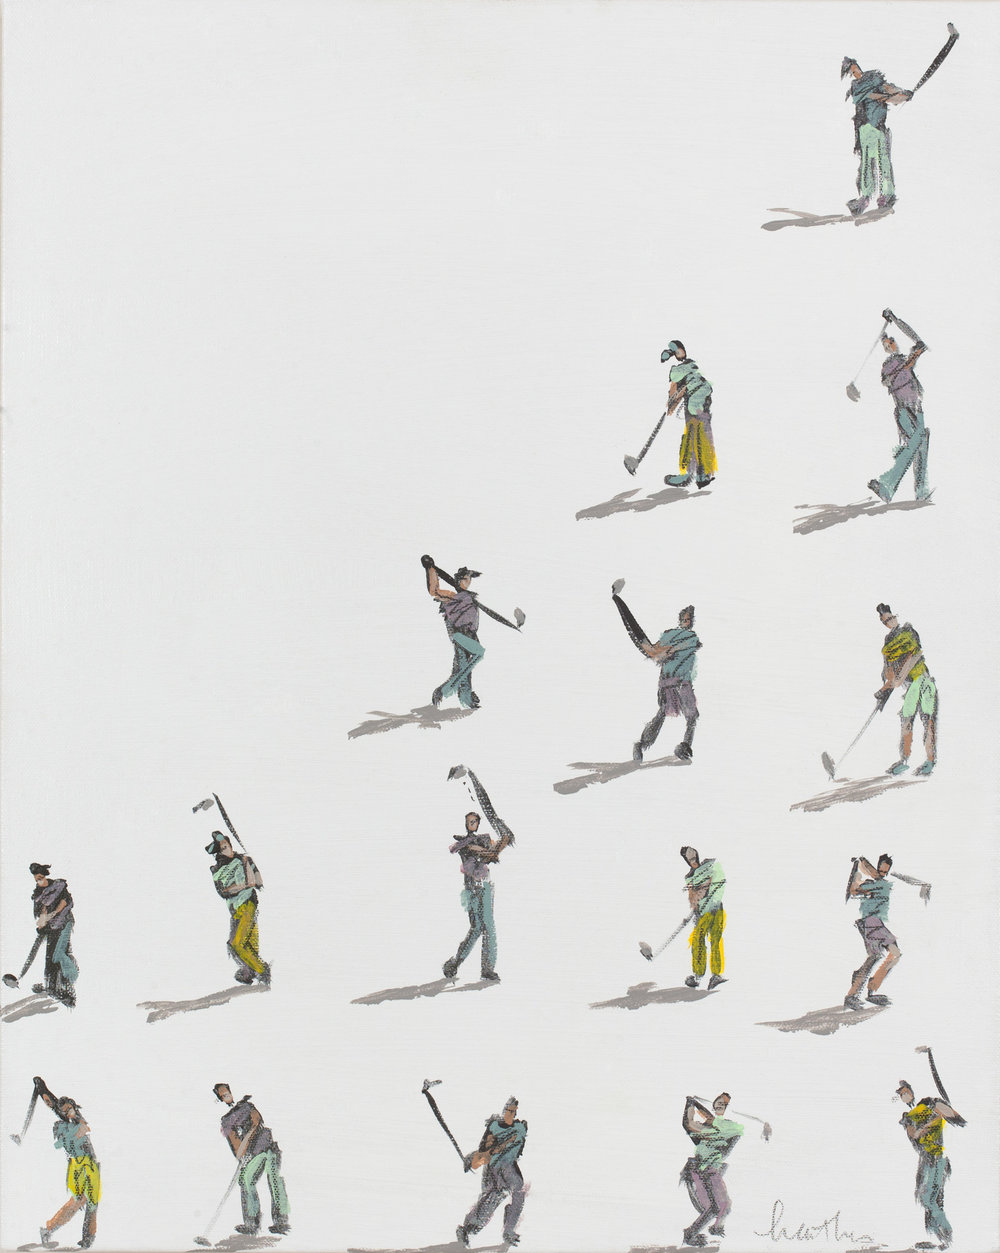 Golfers On White with Shadows